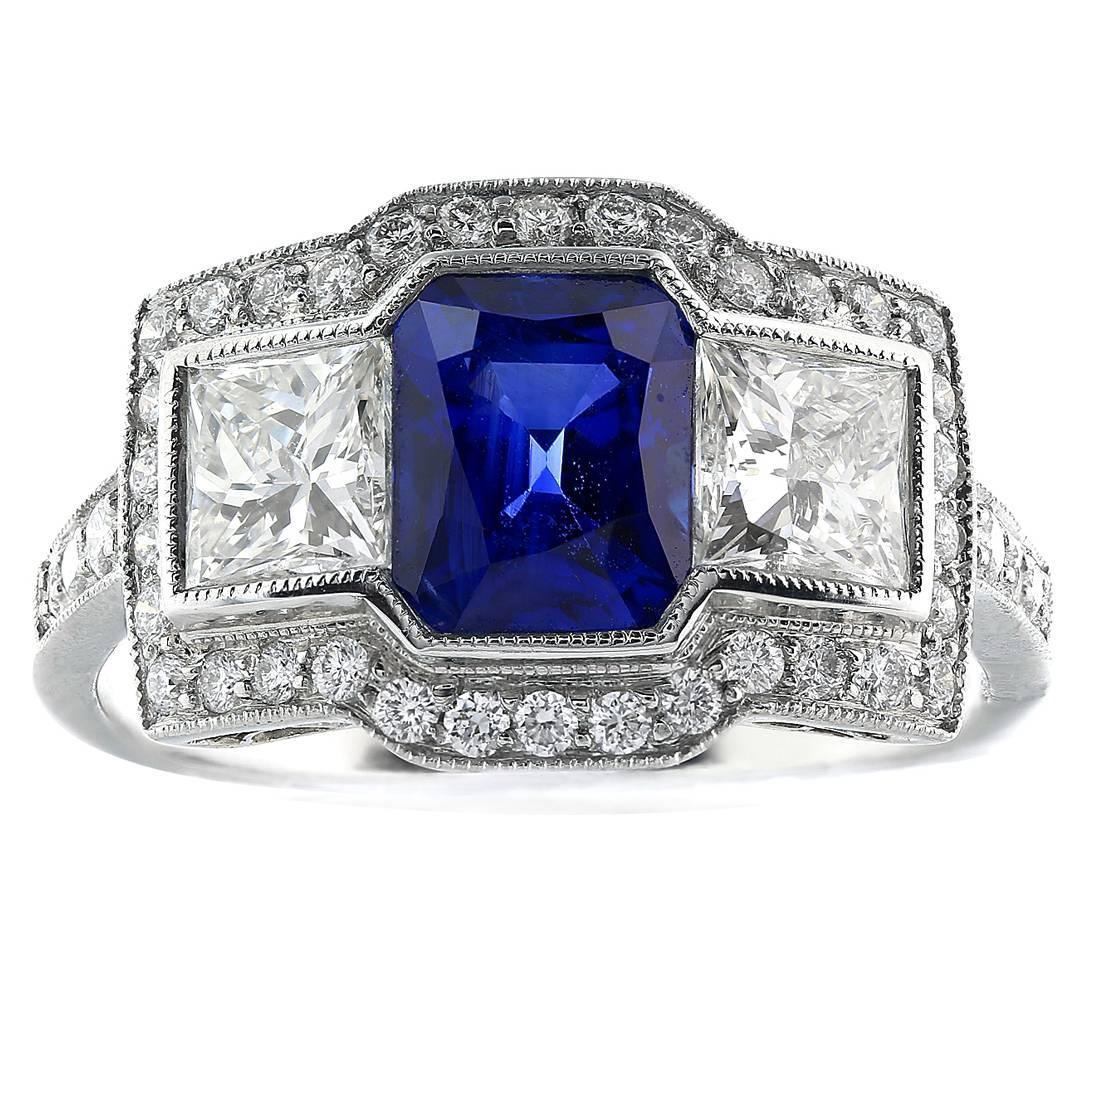 1 73 carat emerald cut sapphire engagement ring at